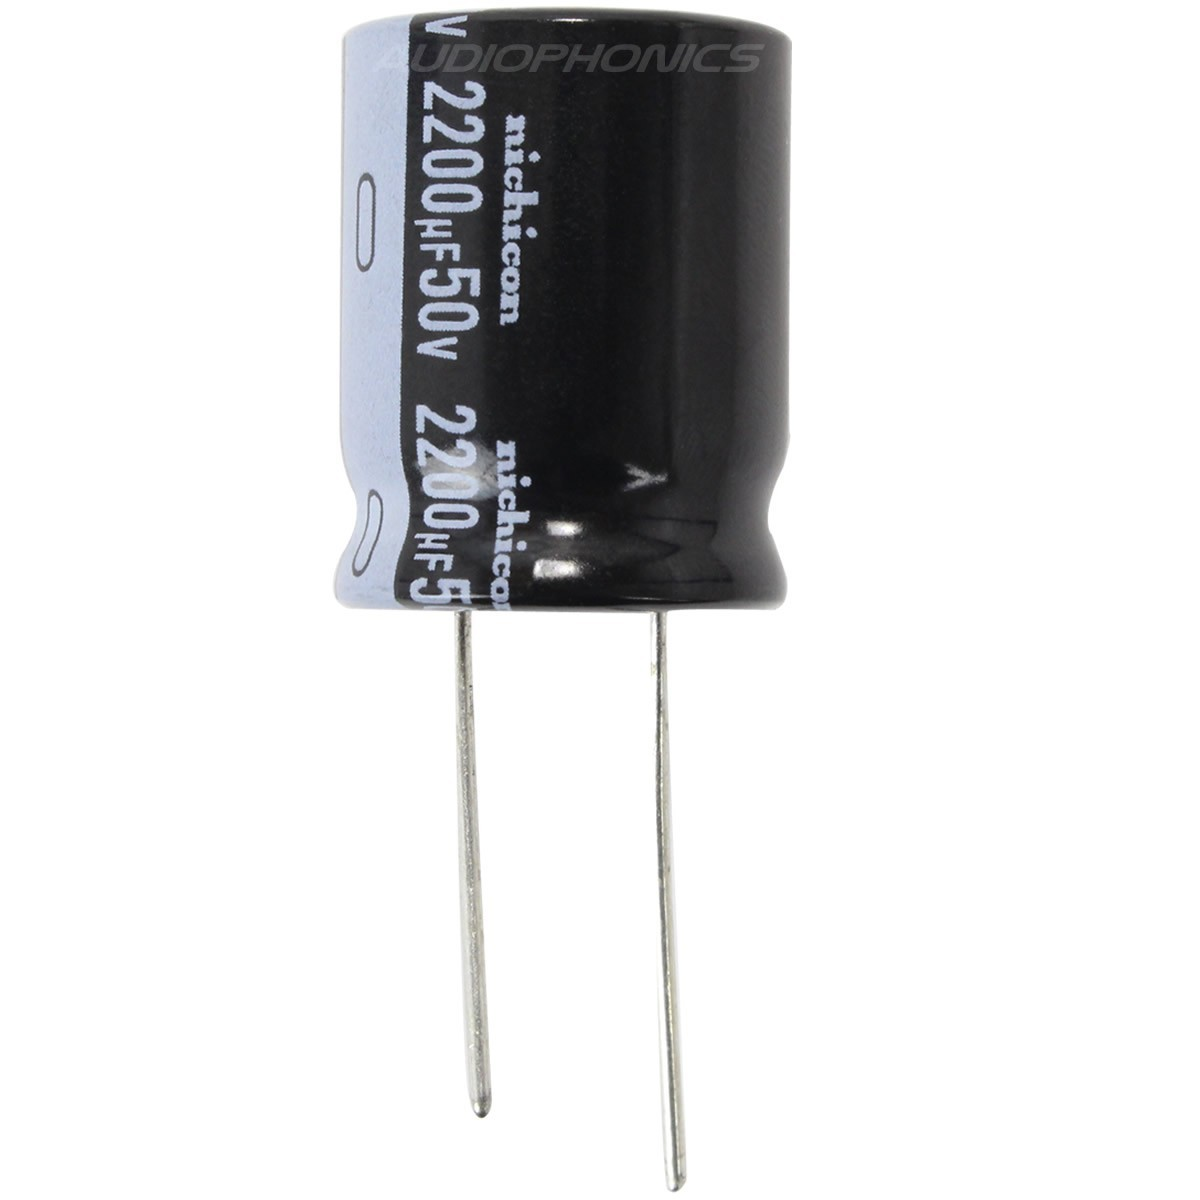 NICHICON URS Electrolytic Audio Capacitor 50V 2200µF